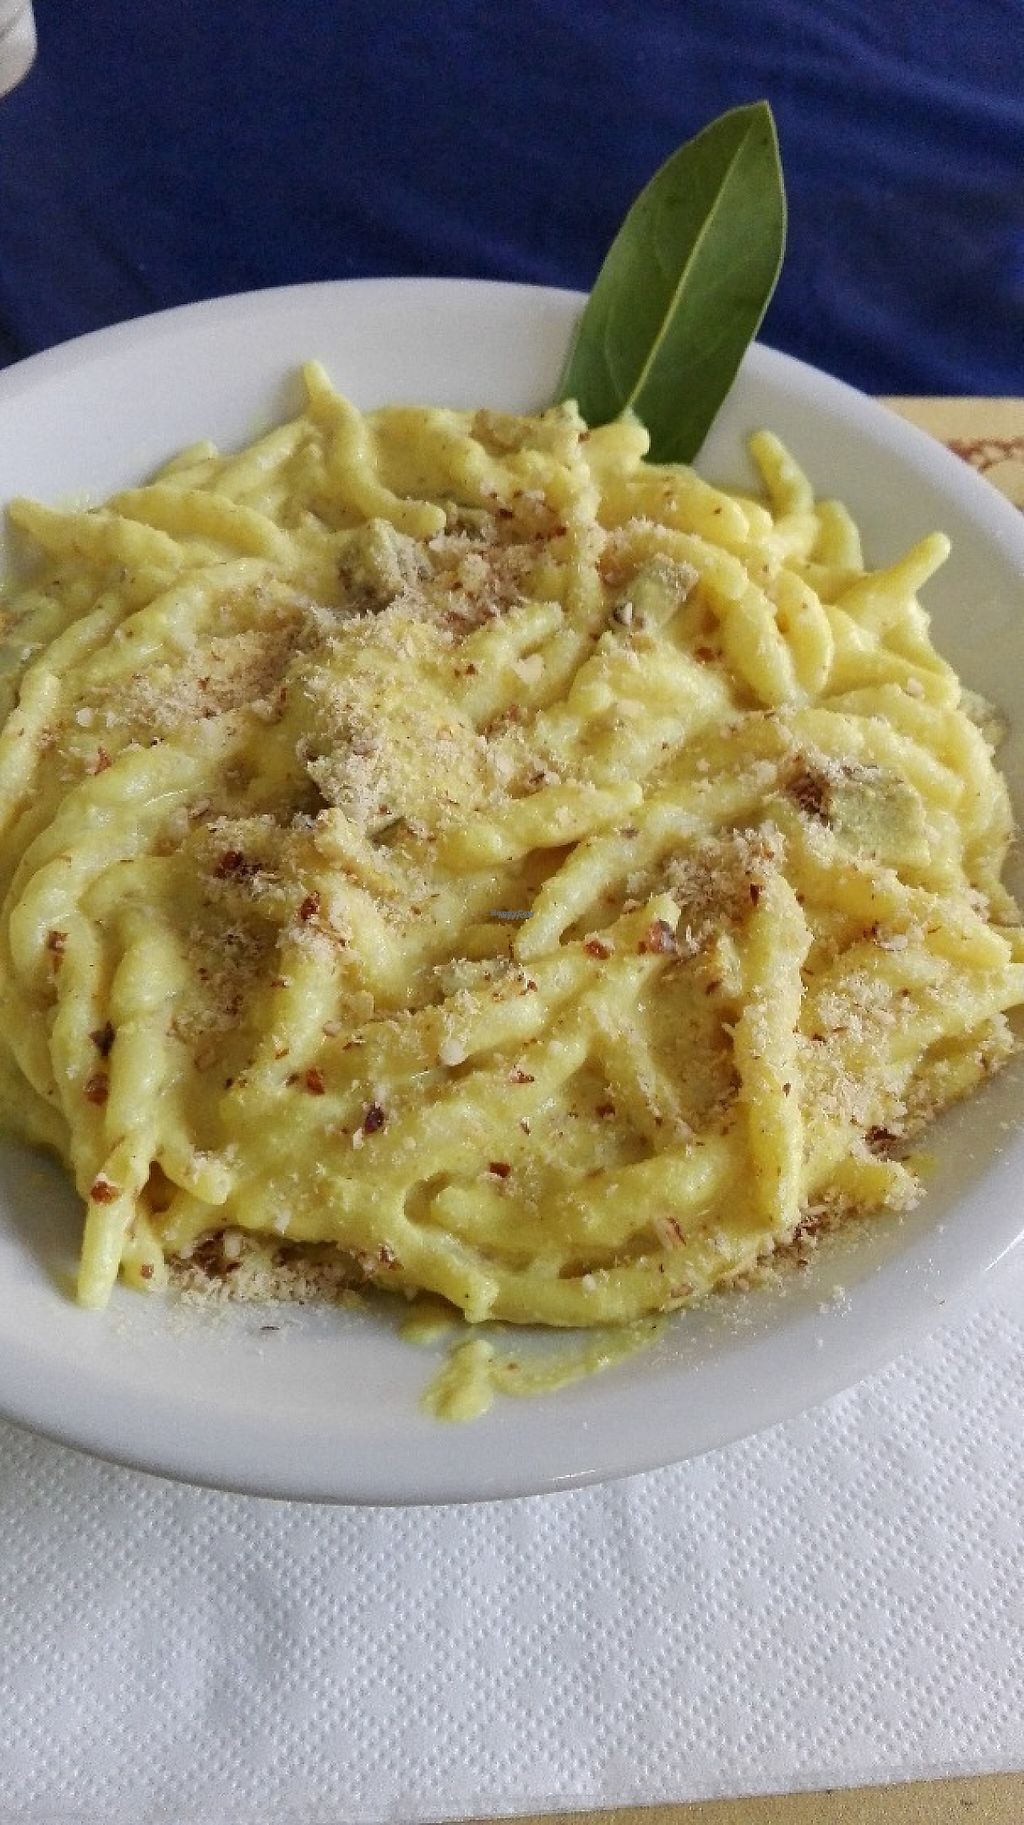 """Photo of Veg and Veg  by <a href=""""/members/profile/VanessaJacques"""">VanessaJacques</a> <br/>Carbonara pasta. So creamy and perfect! <br/> March 22, 2017  - <a href='/contact/abuse/image/22503/239398'>Report</a>"""